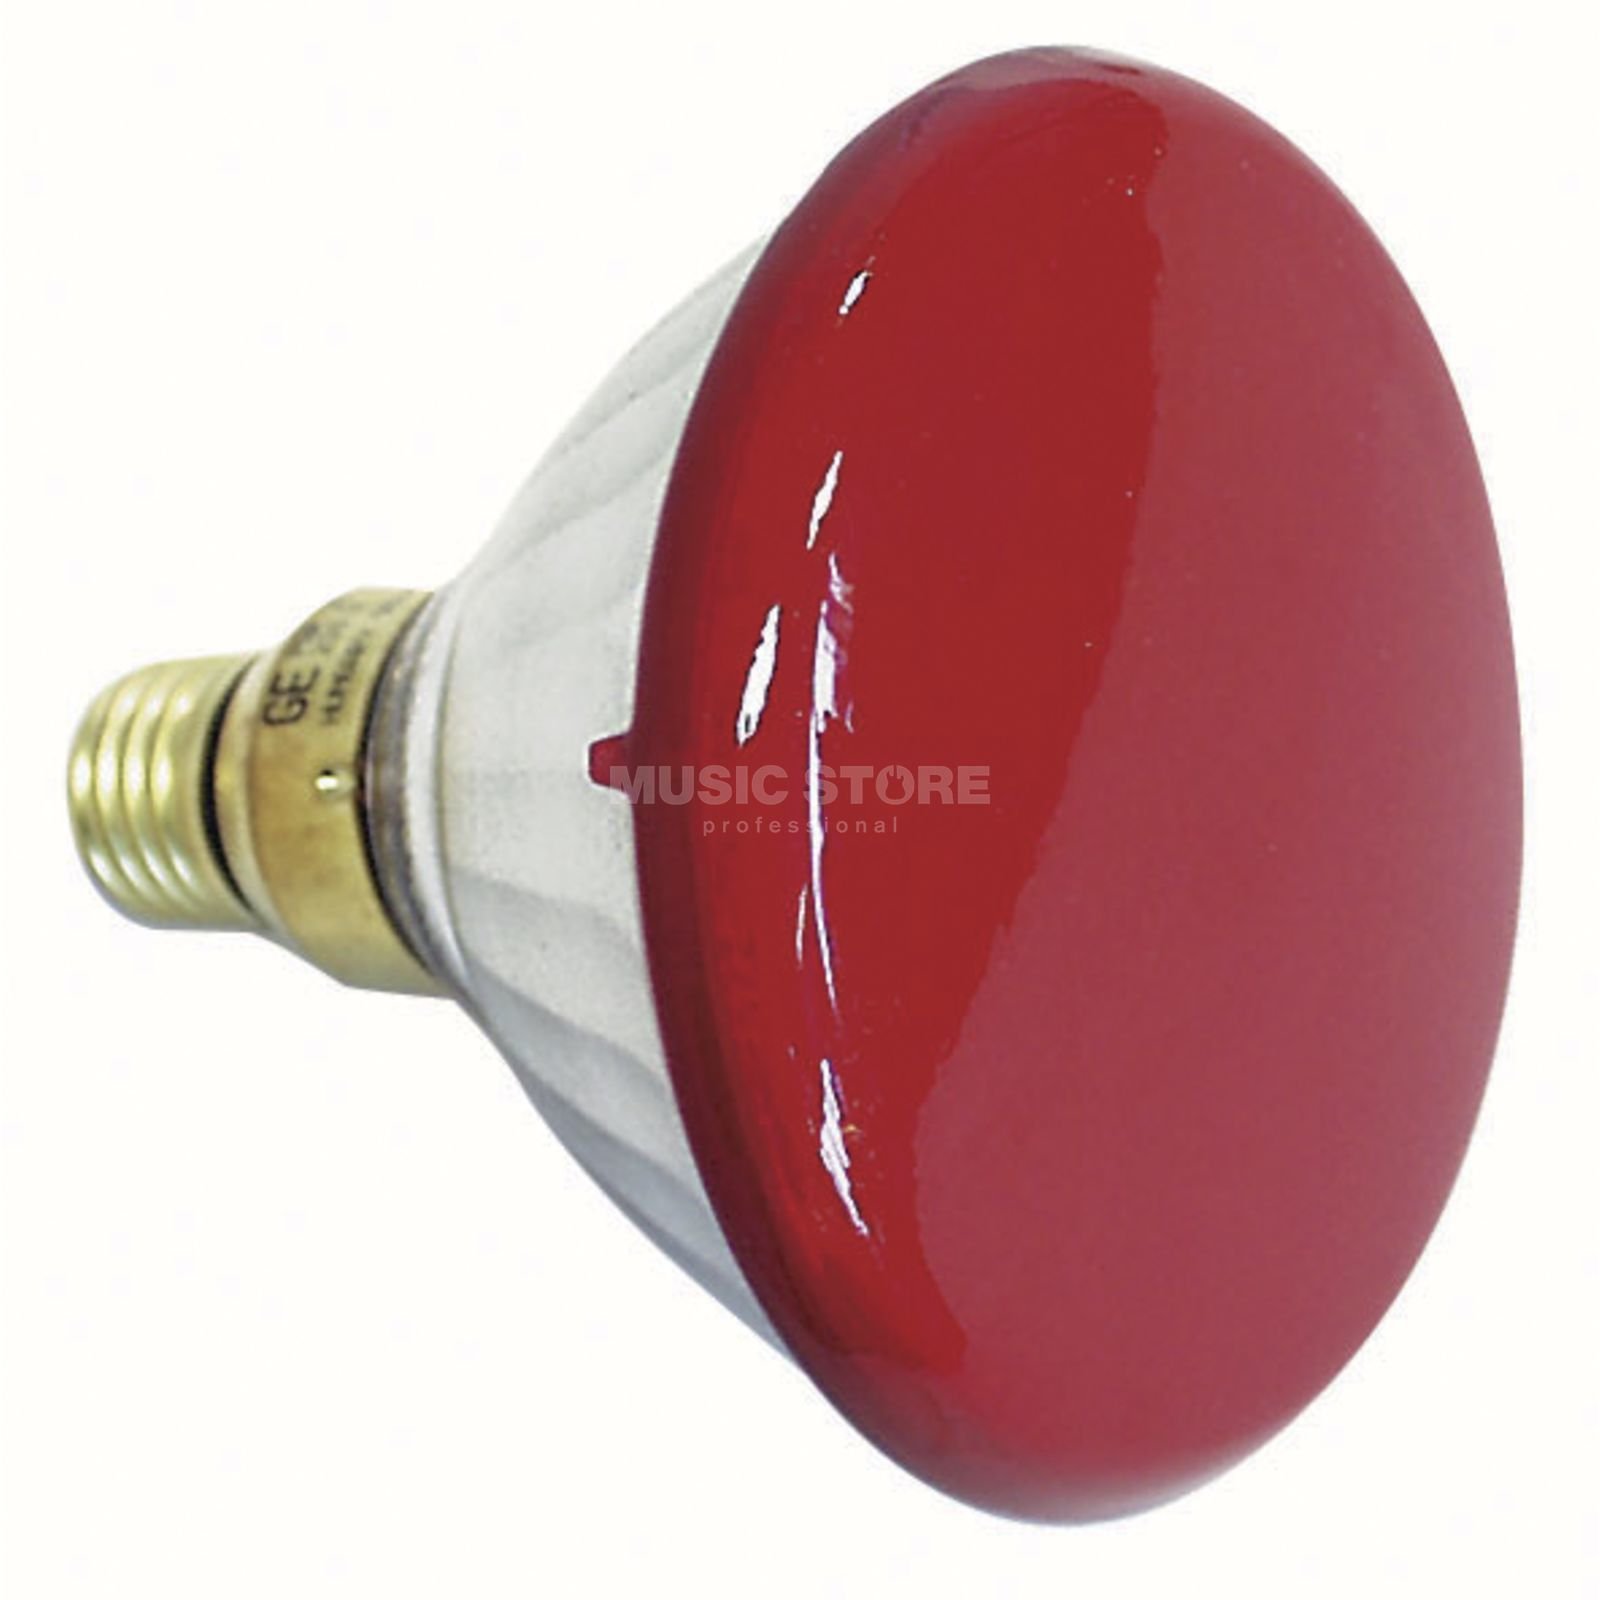 lightmaXX Reflector Lamp E27 Par 38/46 240V/80W Red Produktbillede